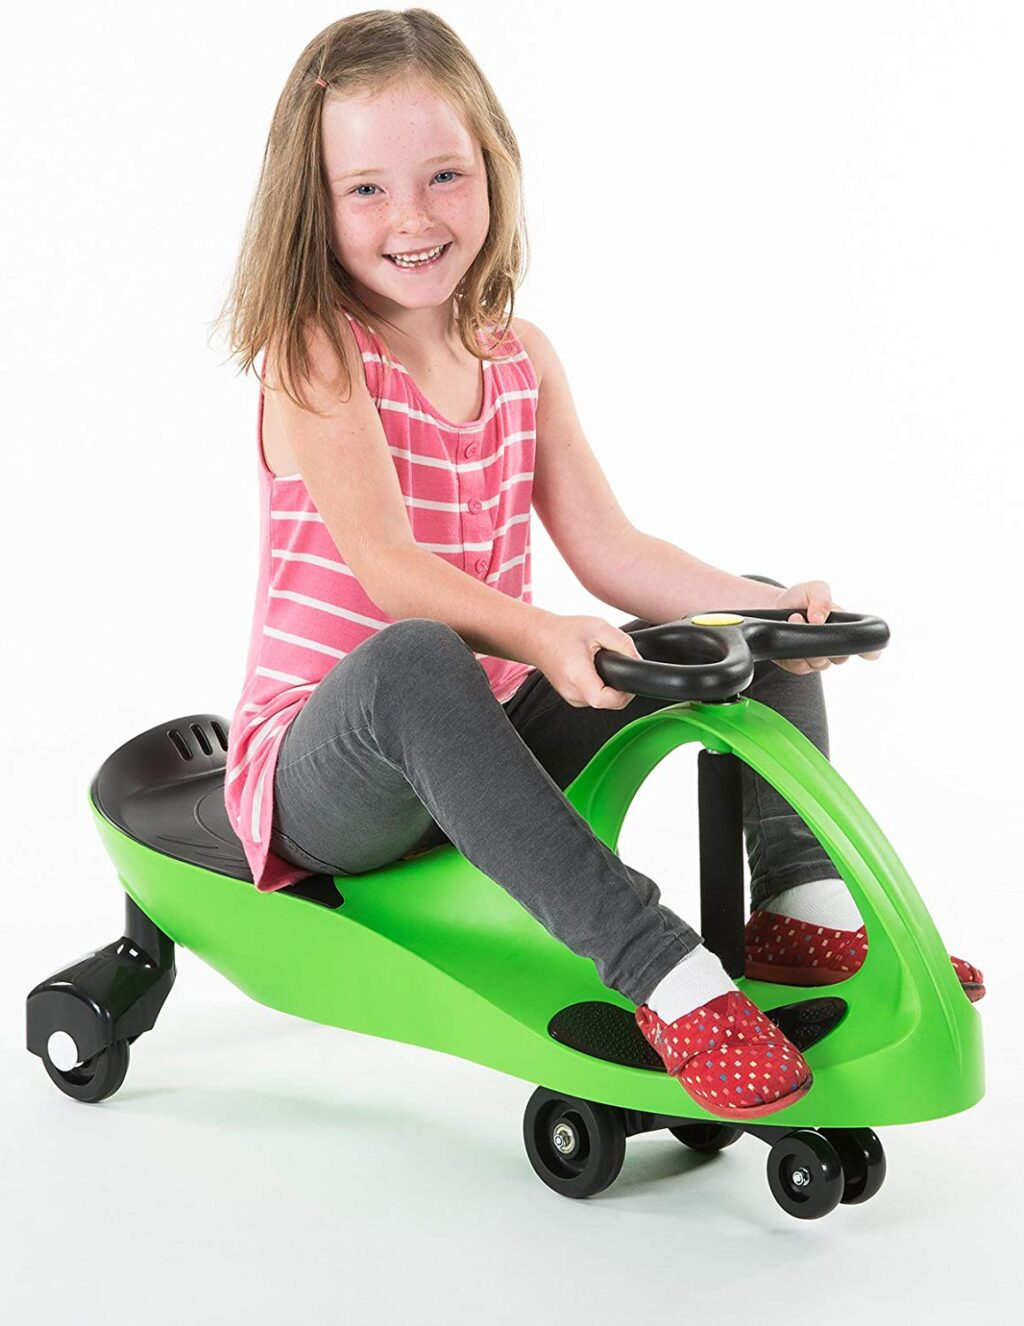 A little girl rides a Plasmacar, it is bright neon green.